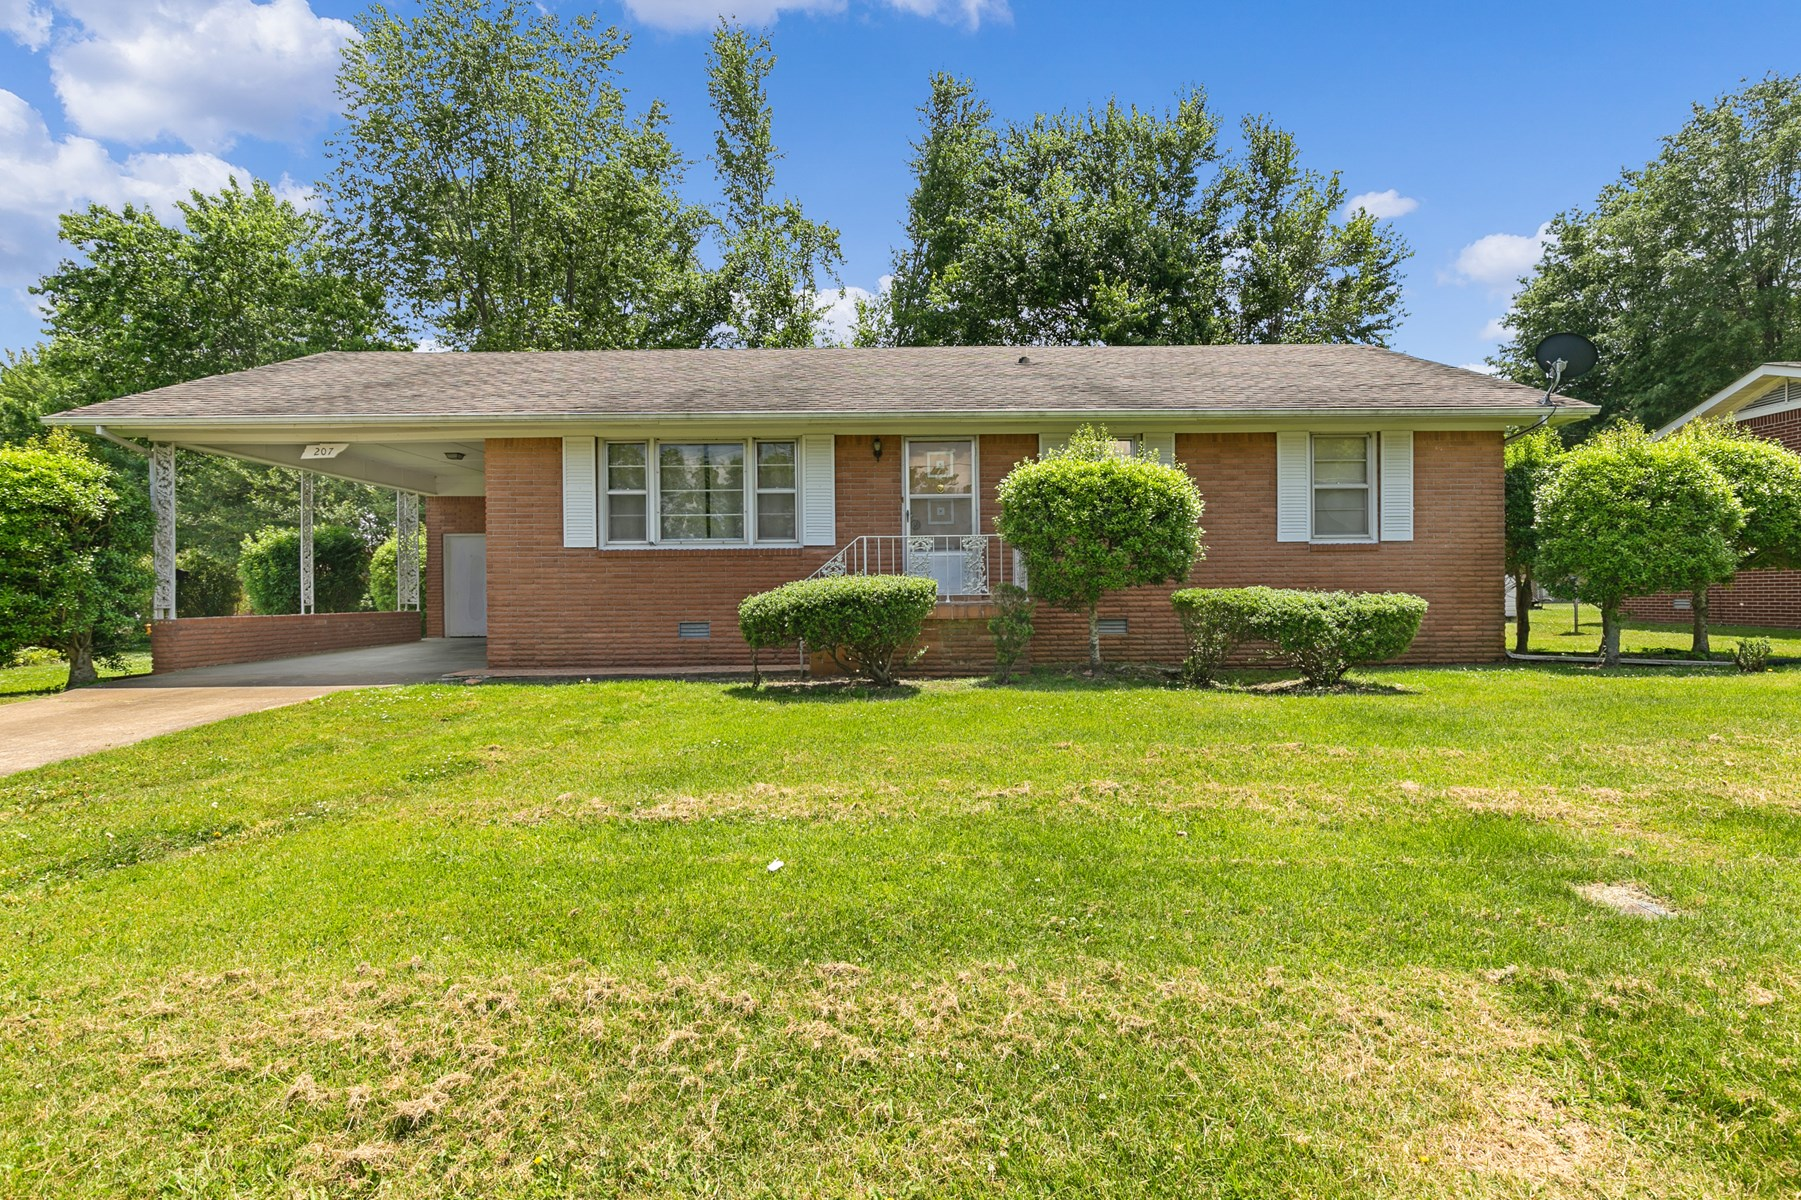 Brick Home for Sale on Nice Lot in Bradford, Tennessee